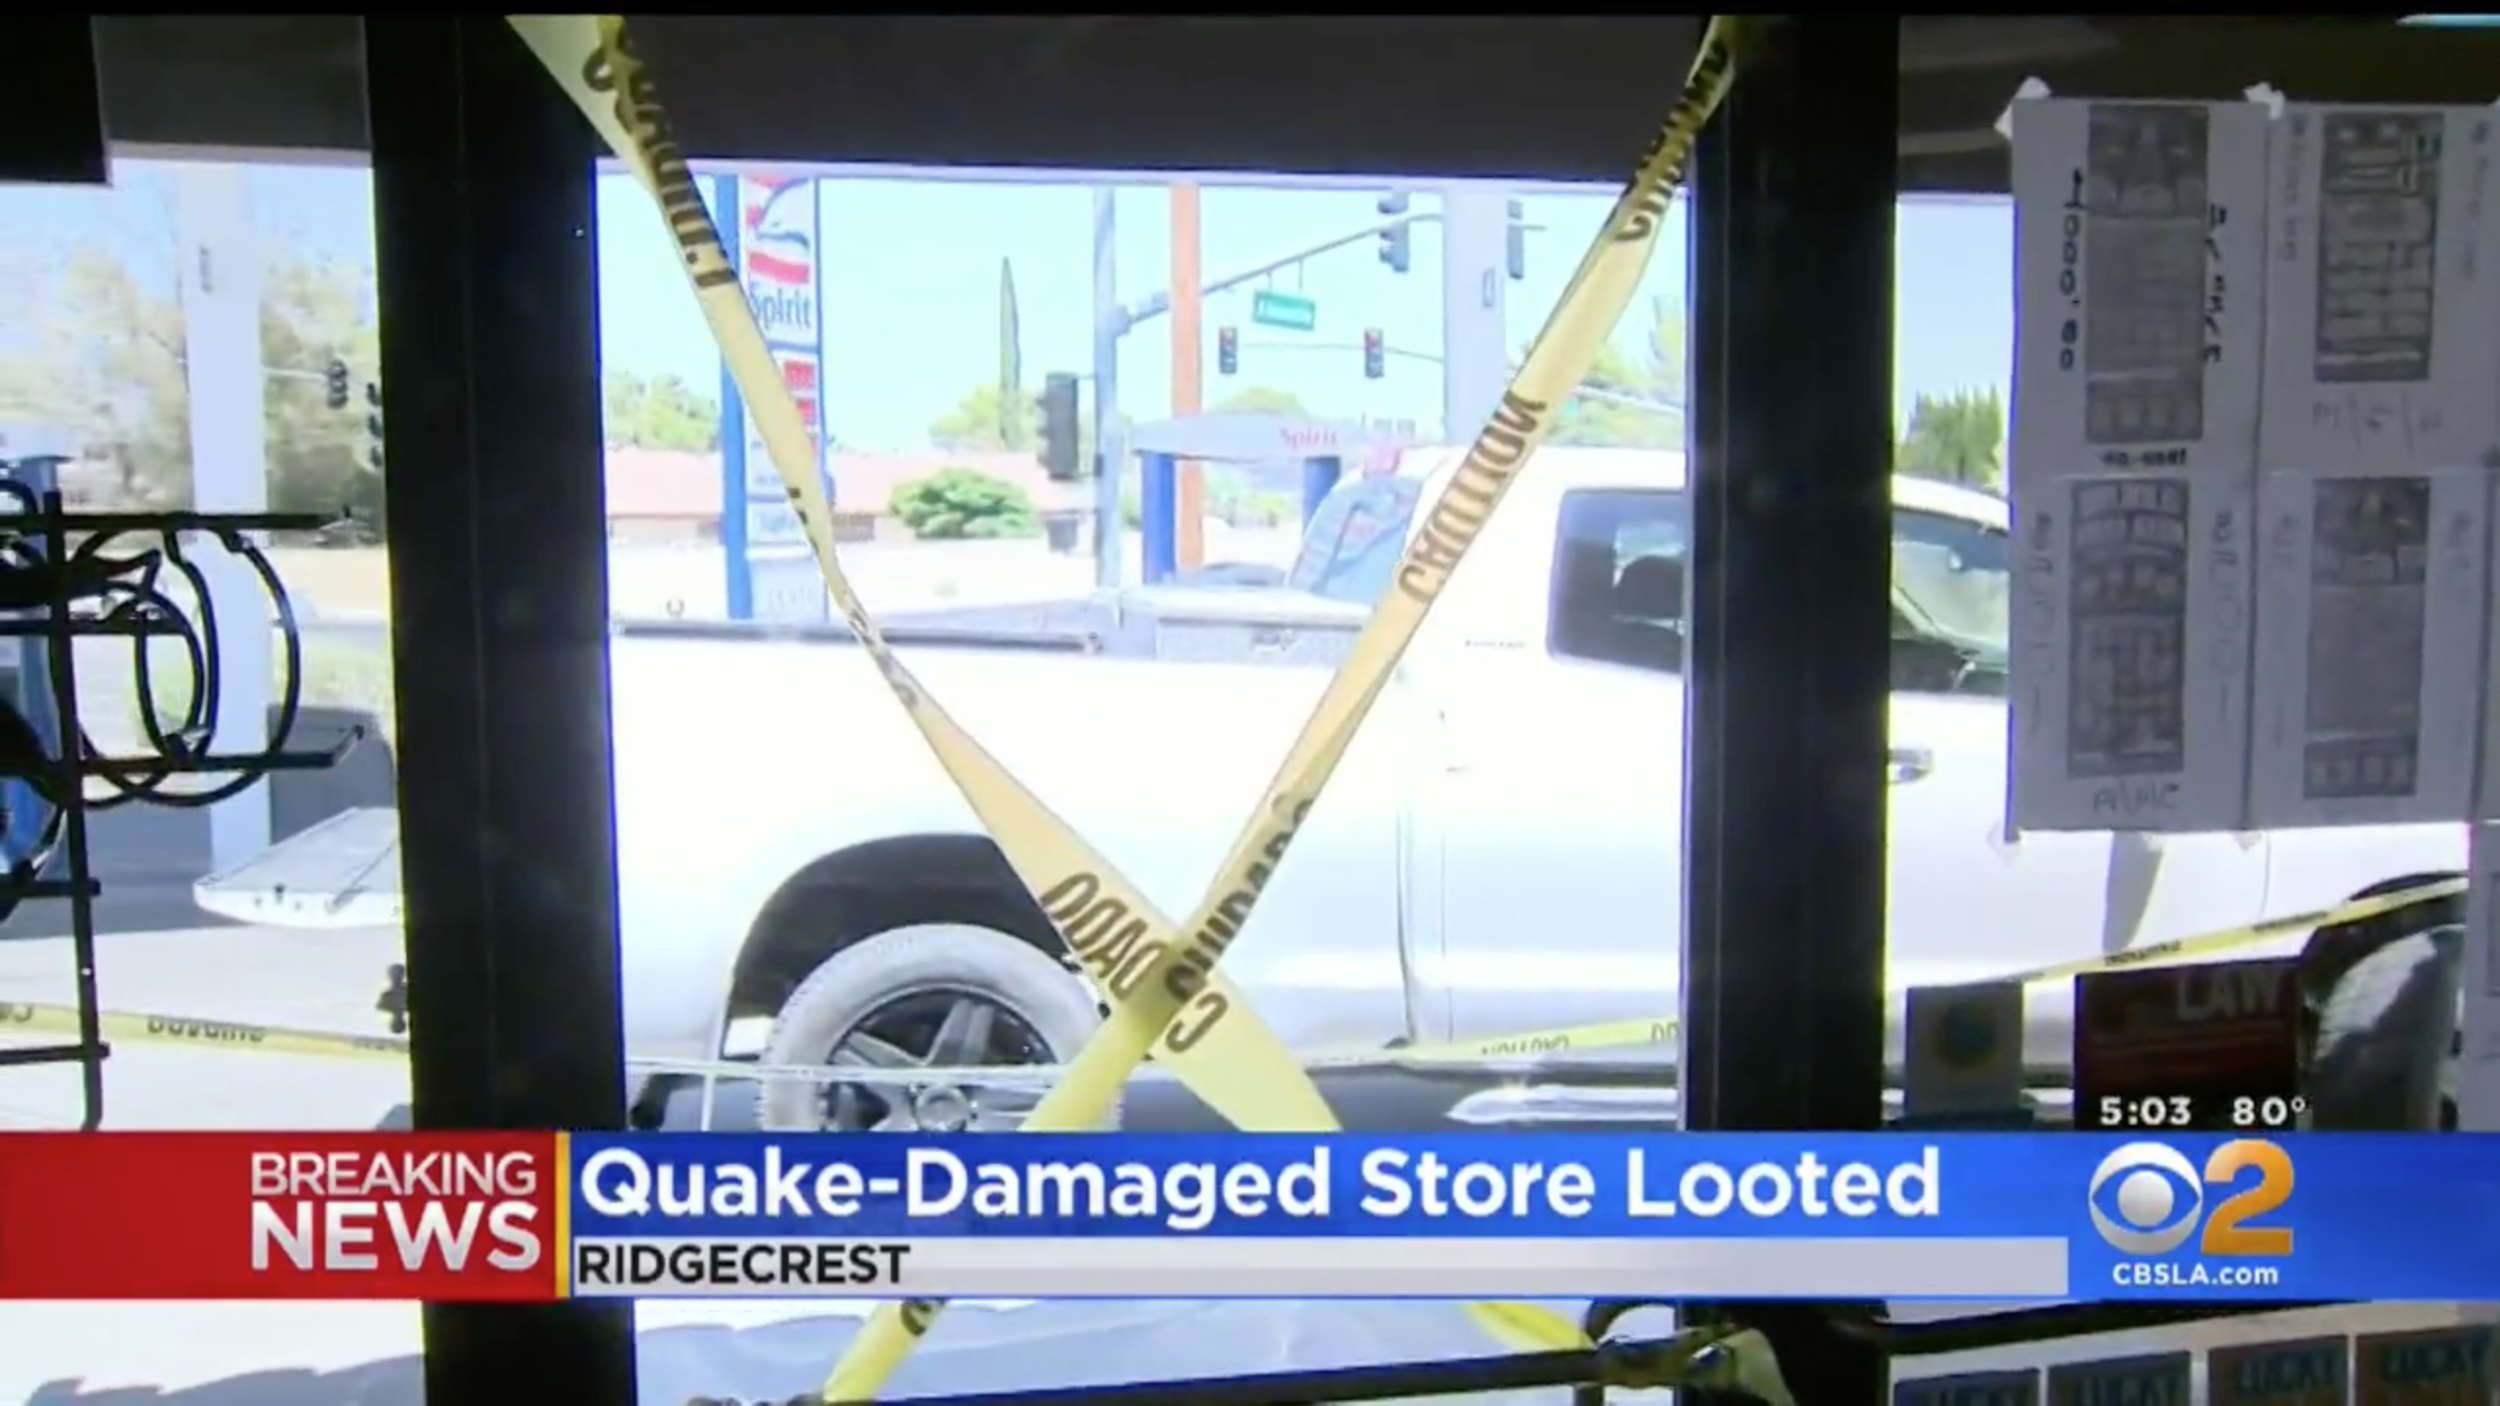 Earthquake-Damaged Liquor Store LOOTED in Ridgecrest, CA